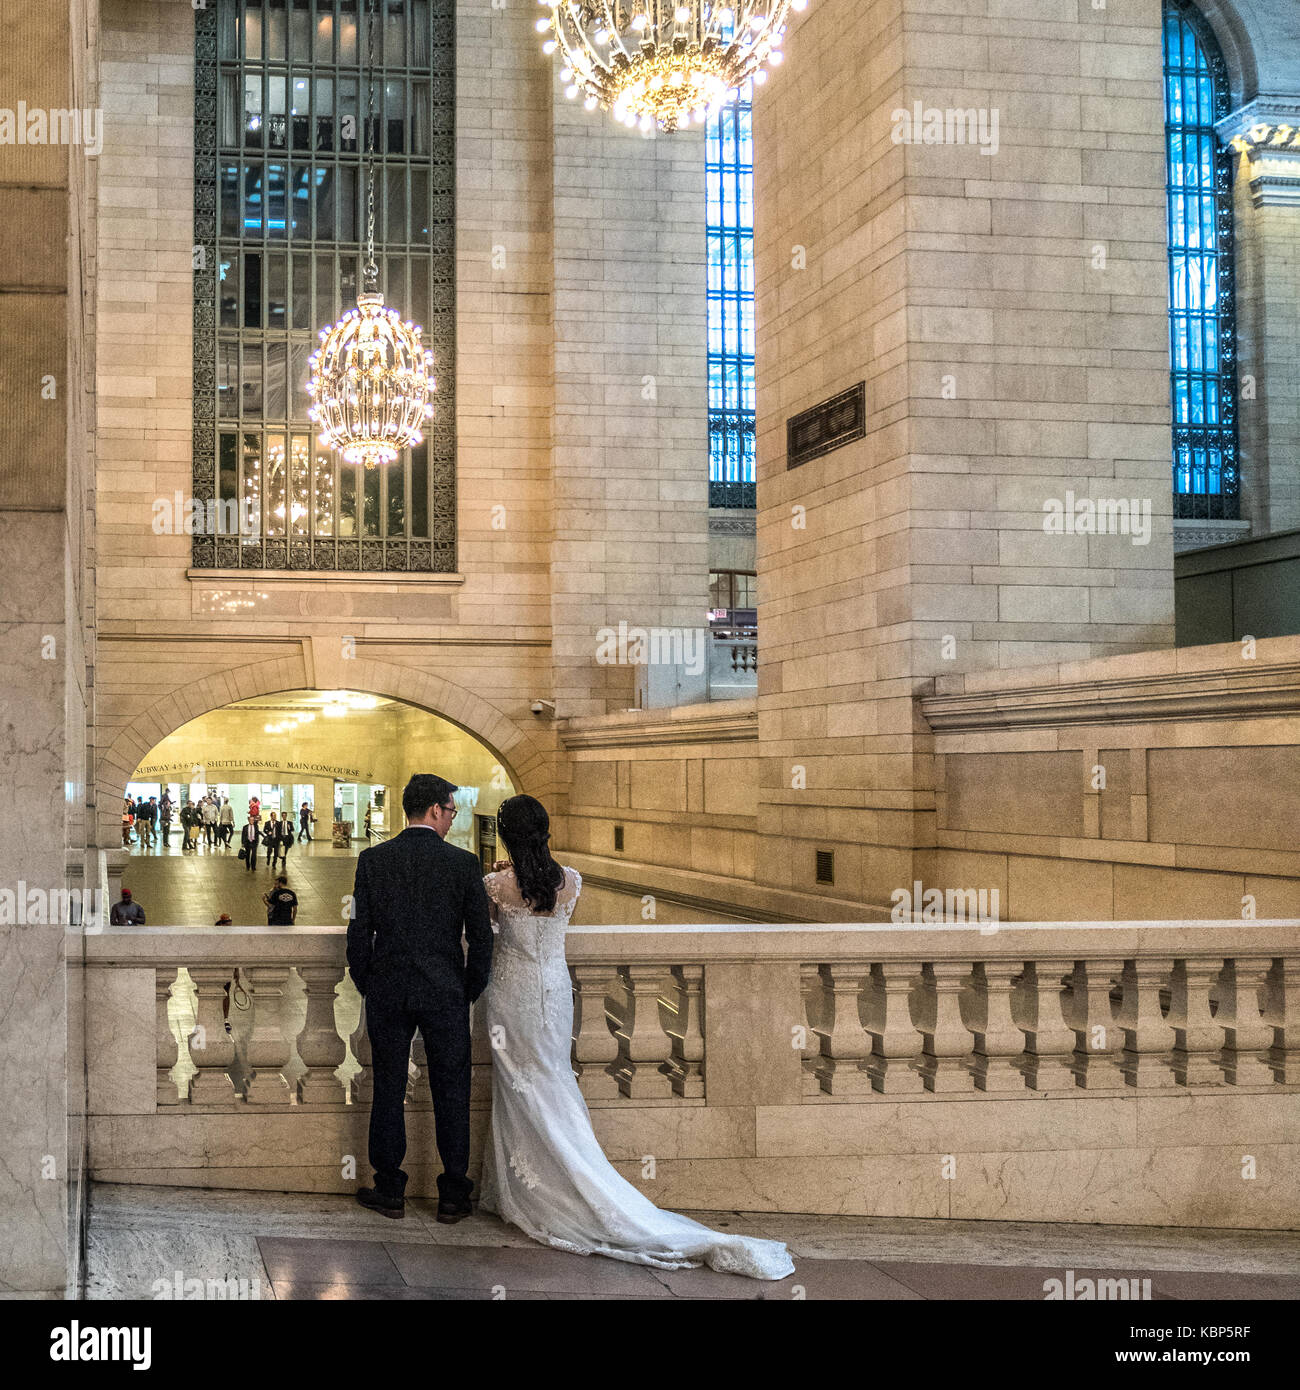 New York, USA,  29 September, 2017.  Newlyweds watch passers-by in New York's Grand Central Station. Photo by - Stock Image